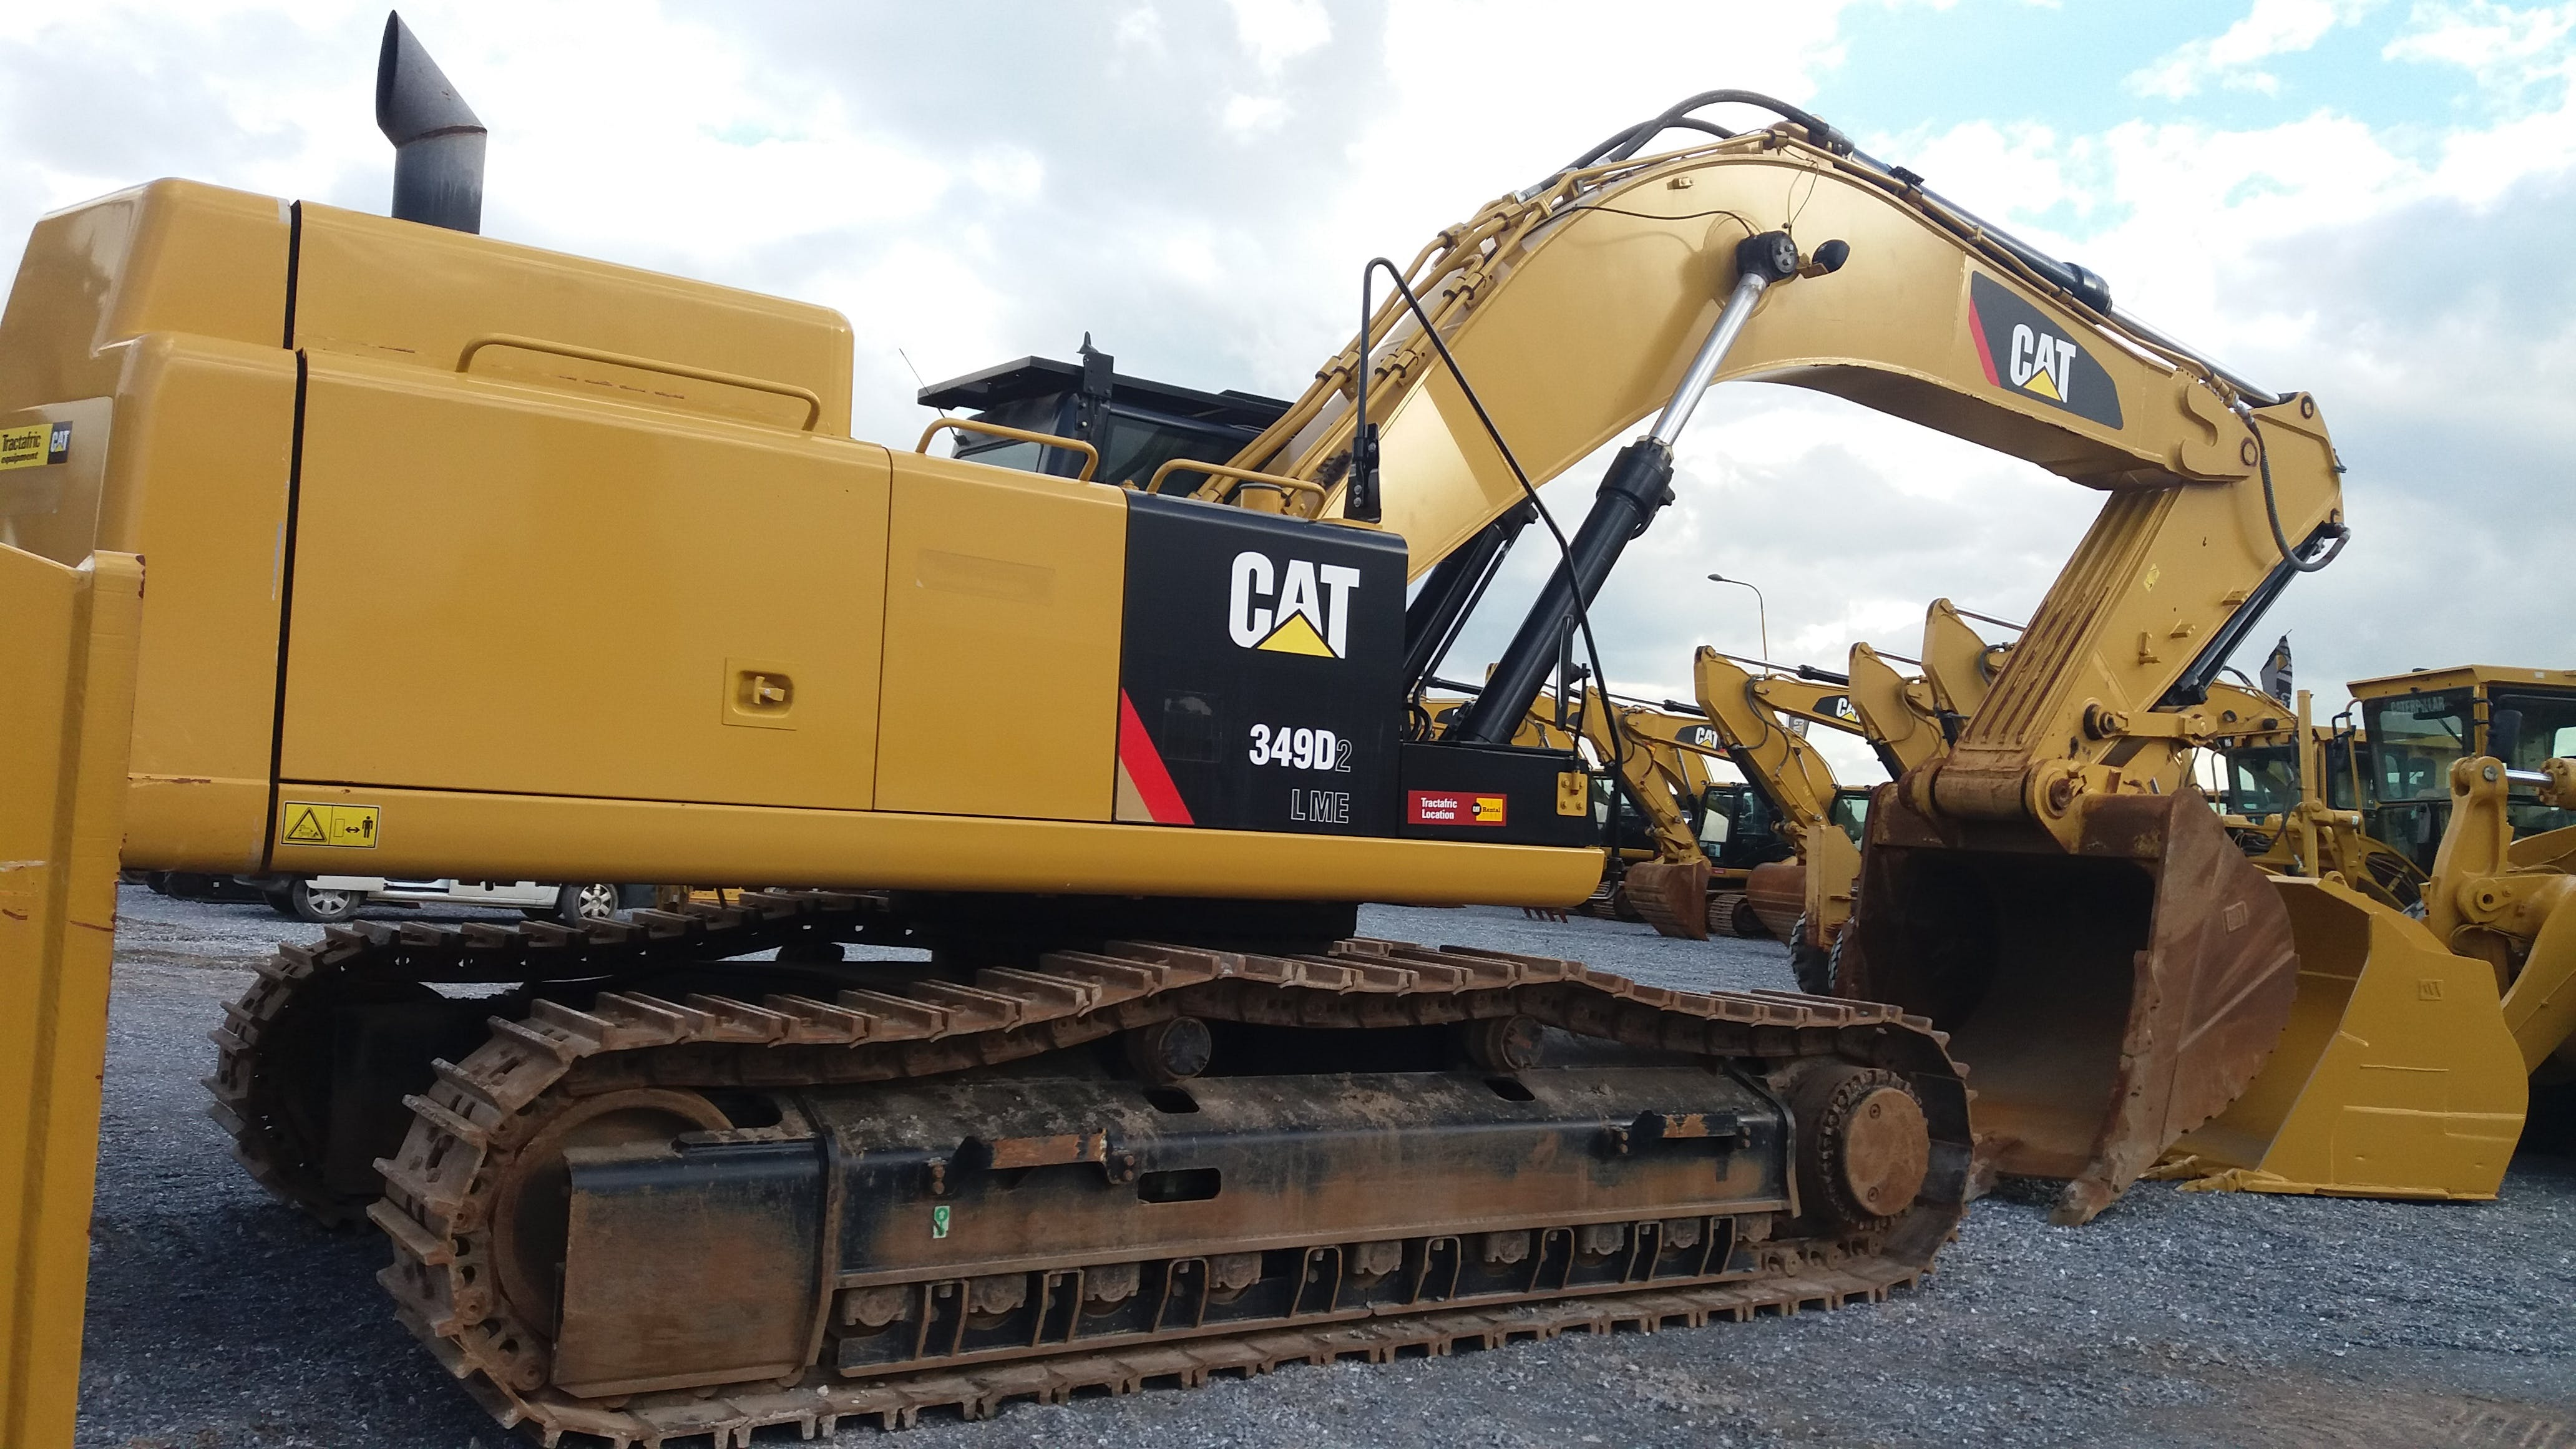 Free stock photo of caterpillar, Construction and public works, construction machinery, industrial machinery